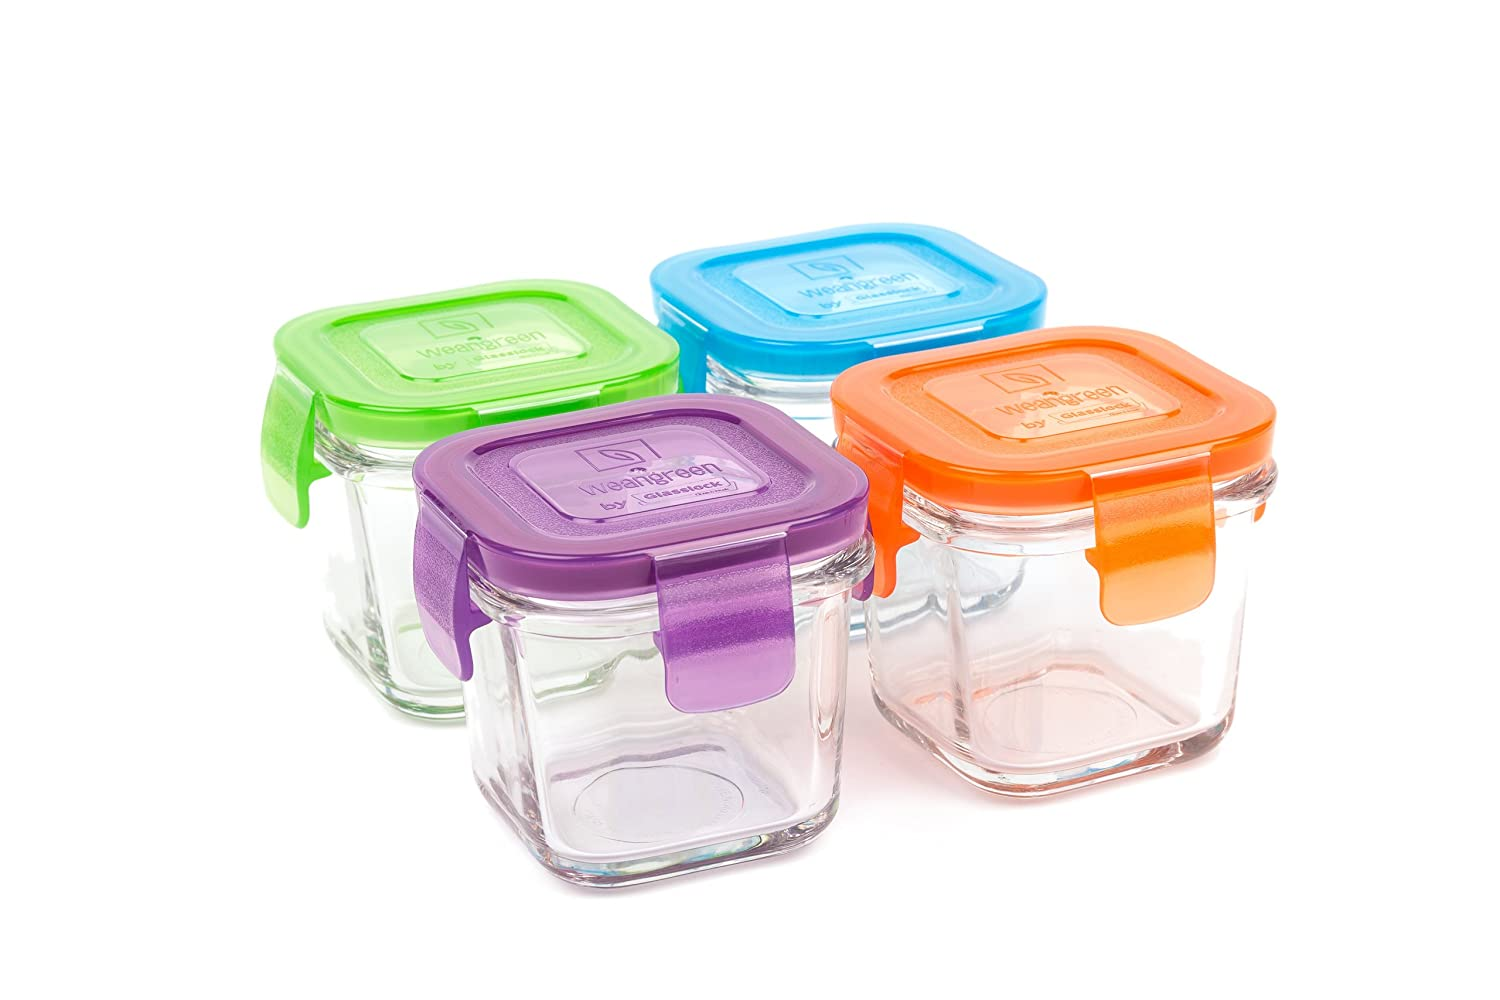 Wean Green Glass Baby Food Storage Containers, Wean Cube 4 Ounces, Garden Pack (4 Pack)